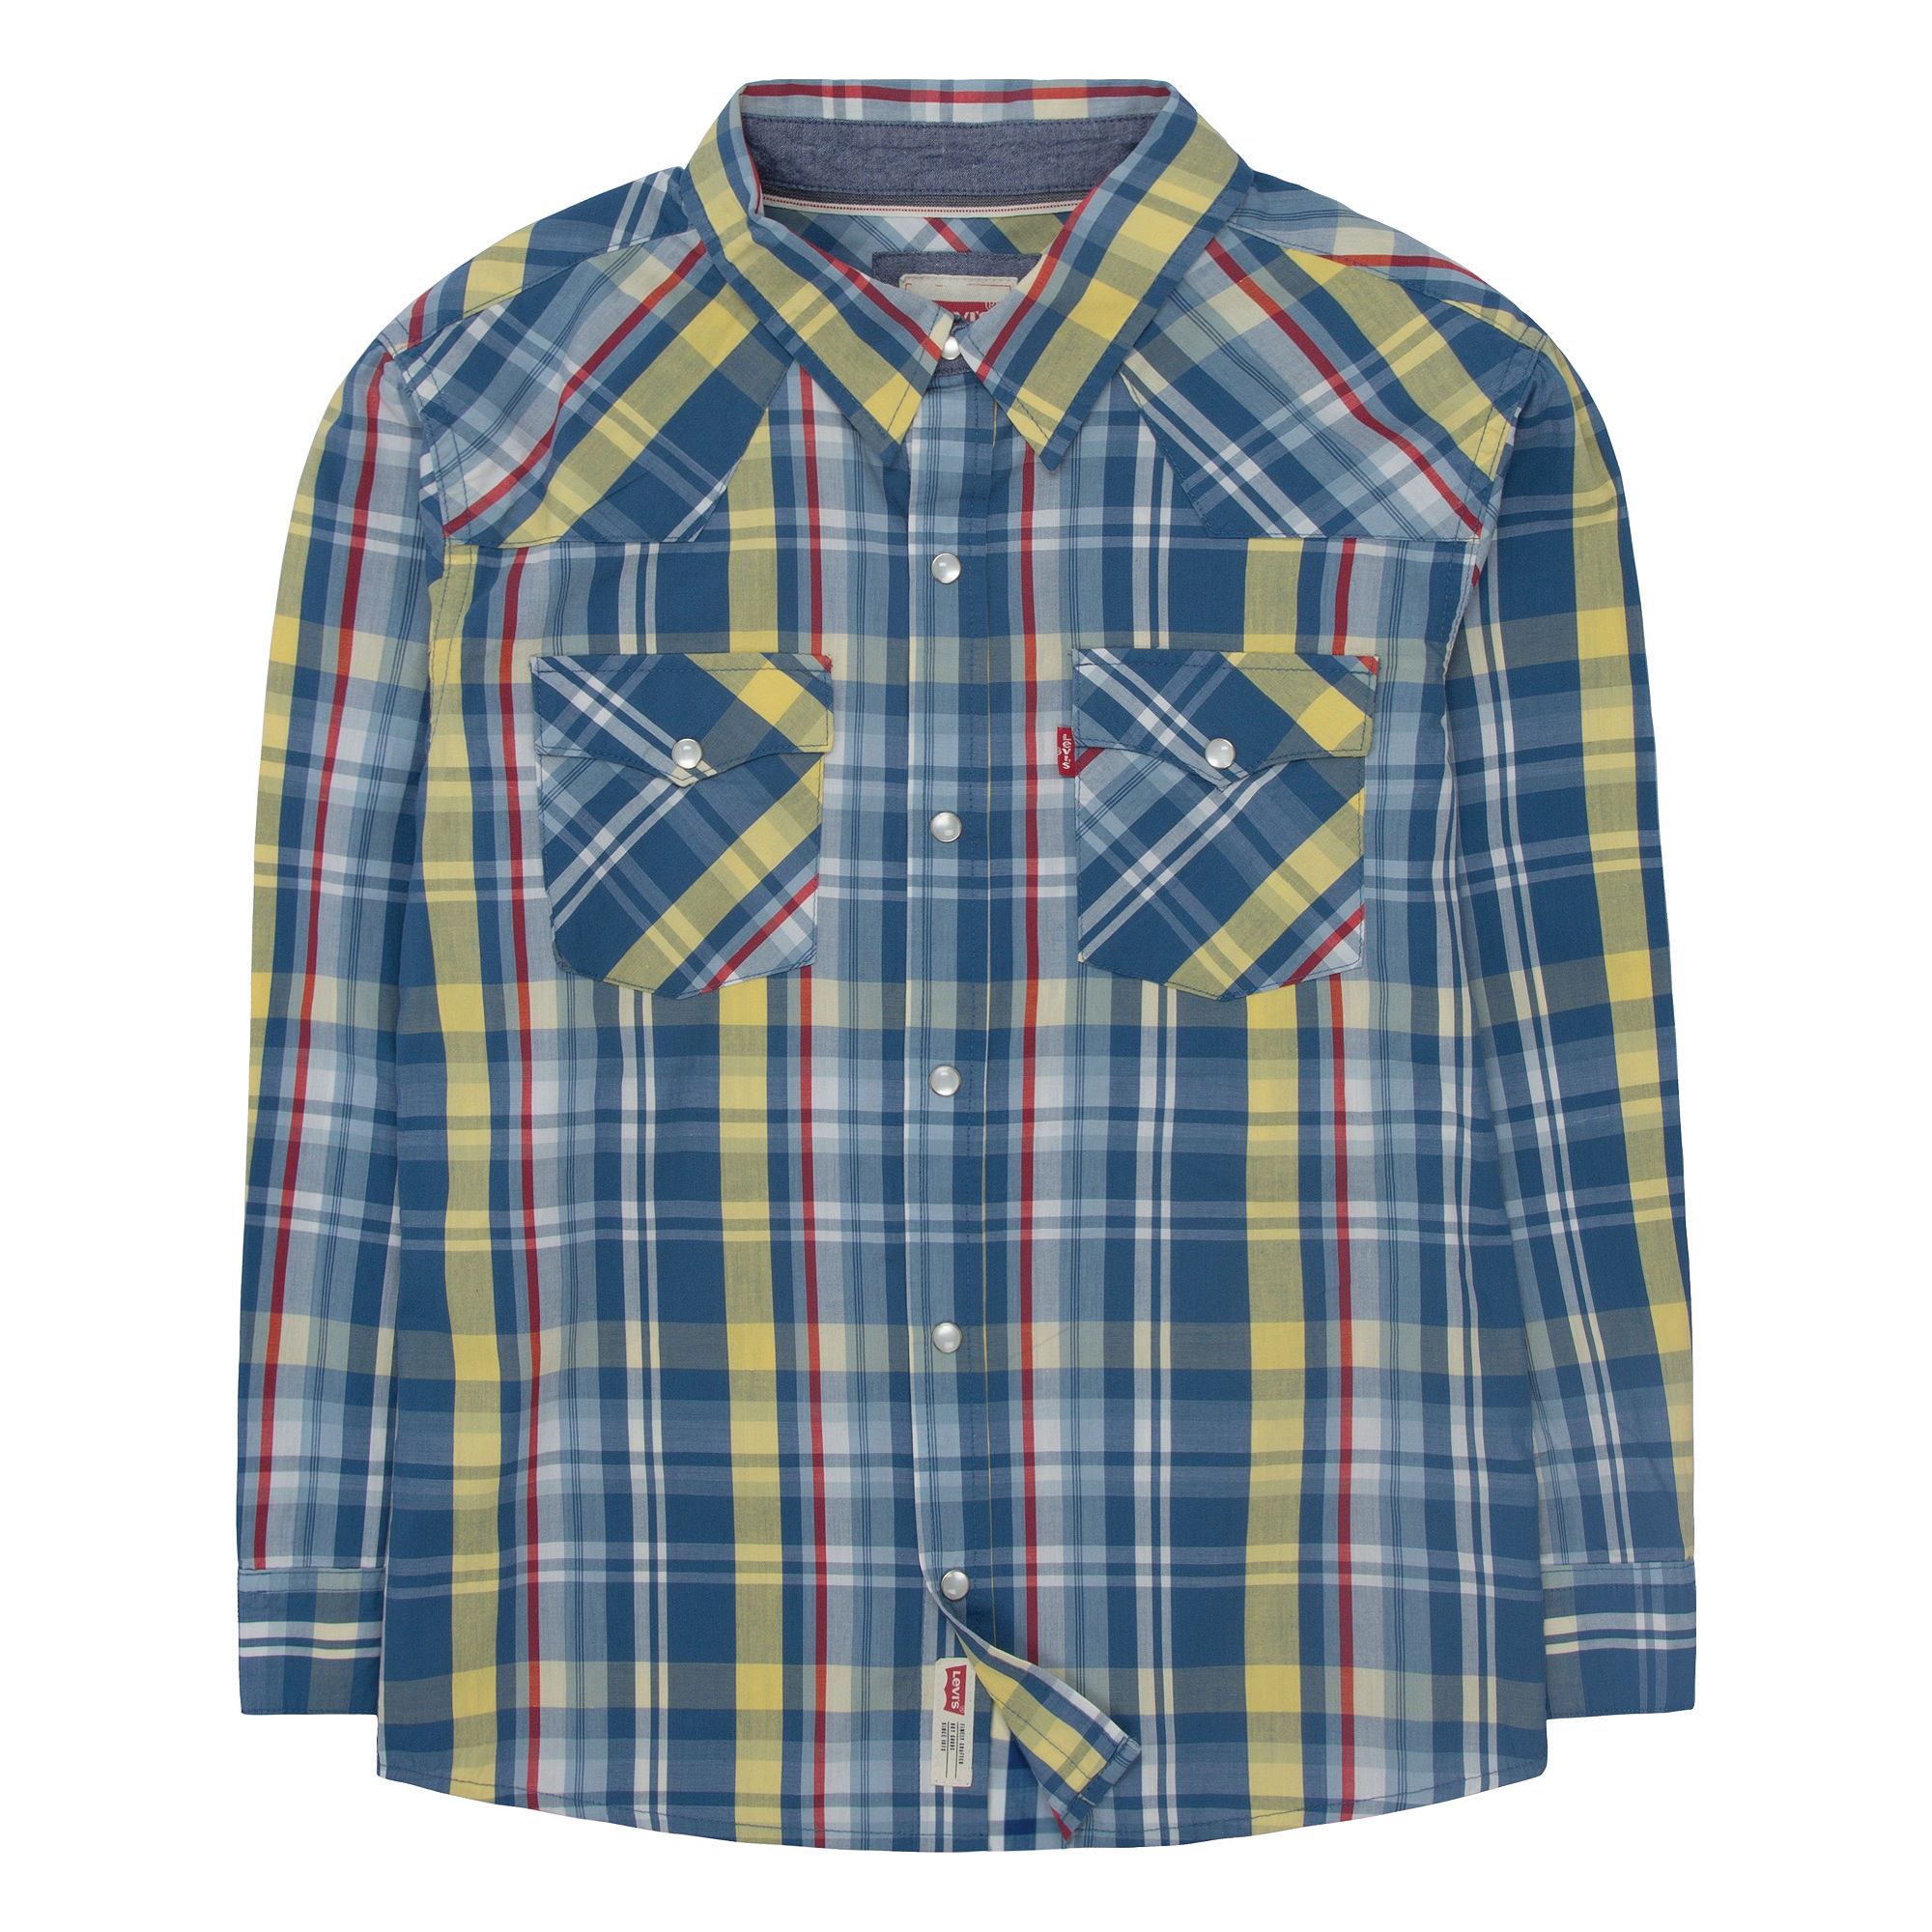 431adf1d I LOVE IT Levis Long-Sleeve Barstow West Plaid Shirt - Boys 8-20